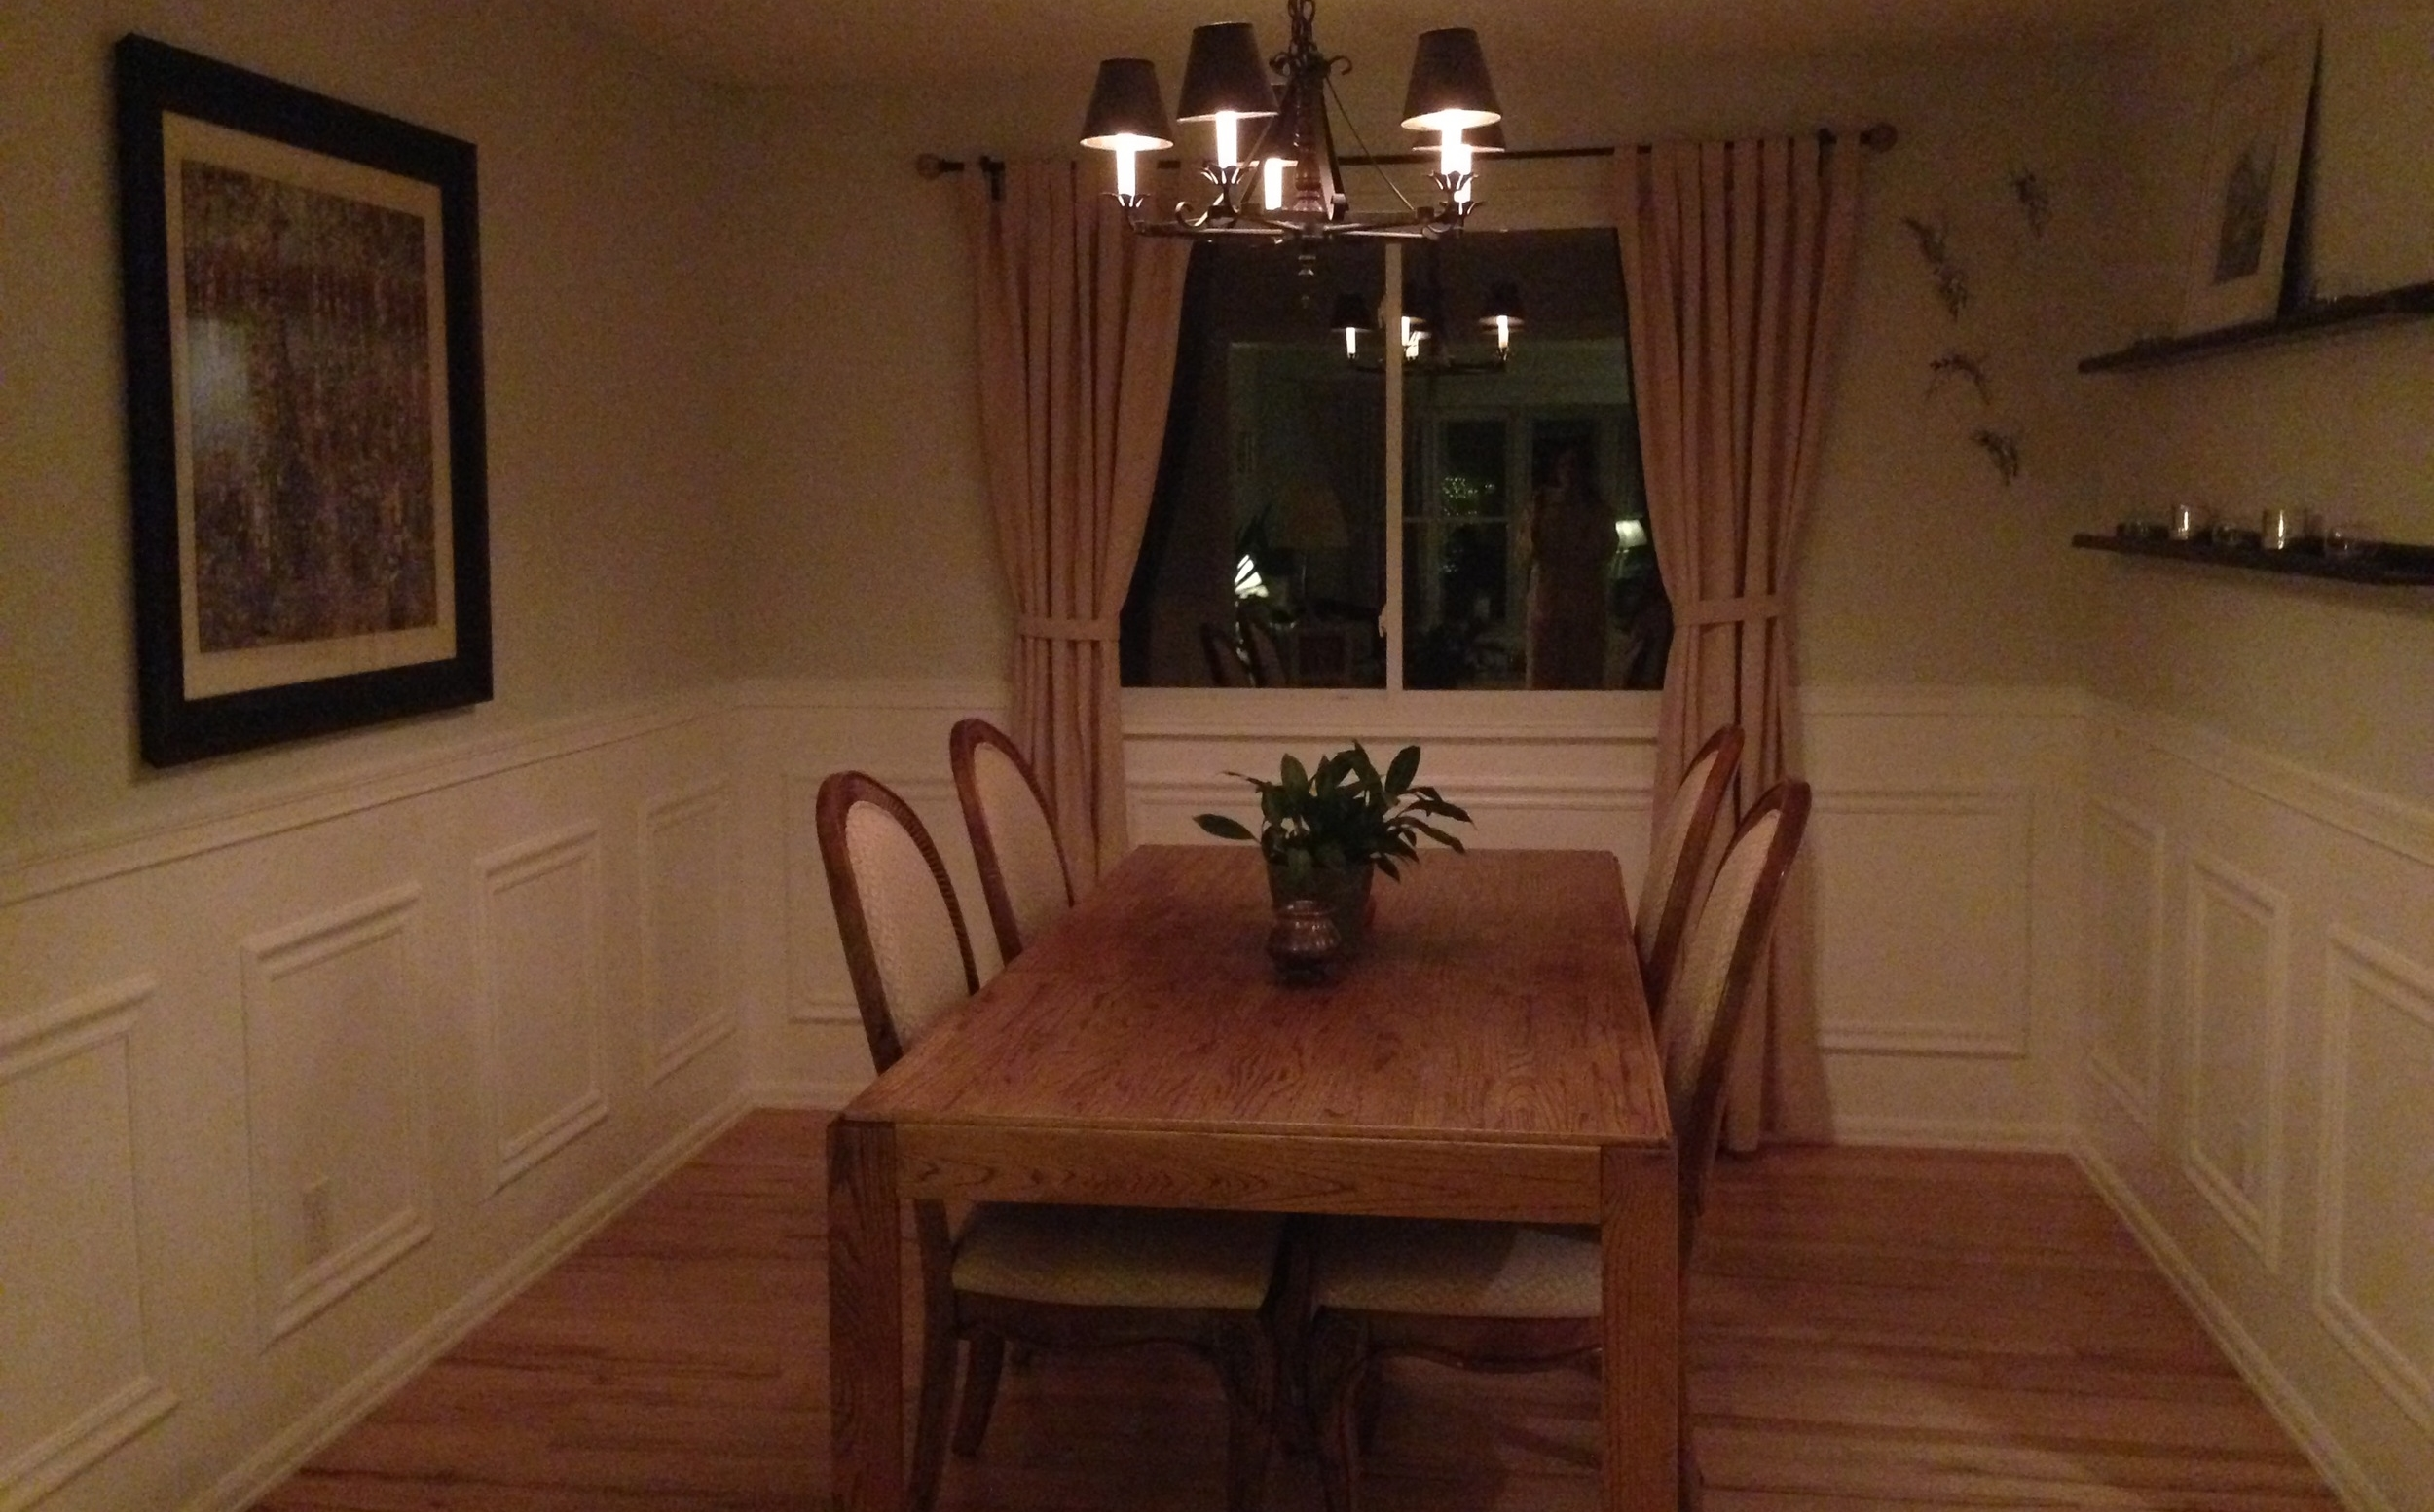 Nobody judge! This was the table and chairs in the old dining room. It's easy to see why I was desperate for change..